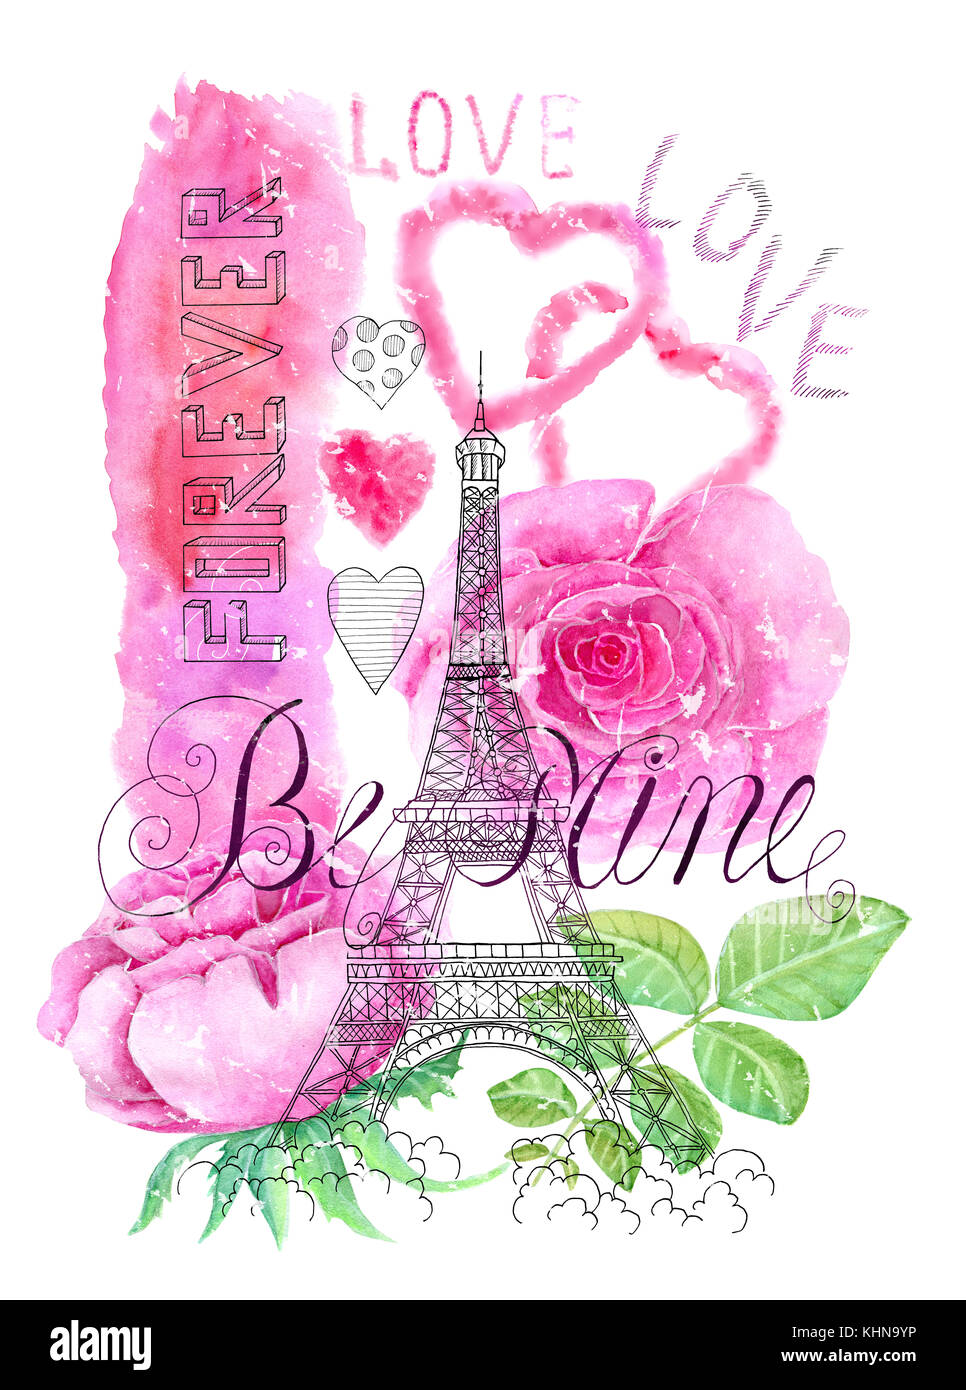 Illustration with the Eiffel Tower, roses and love symbols Stock Photo